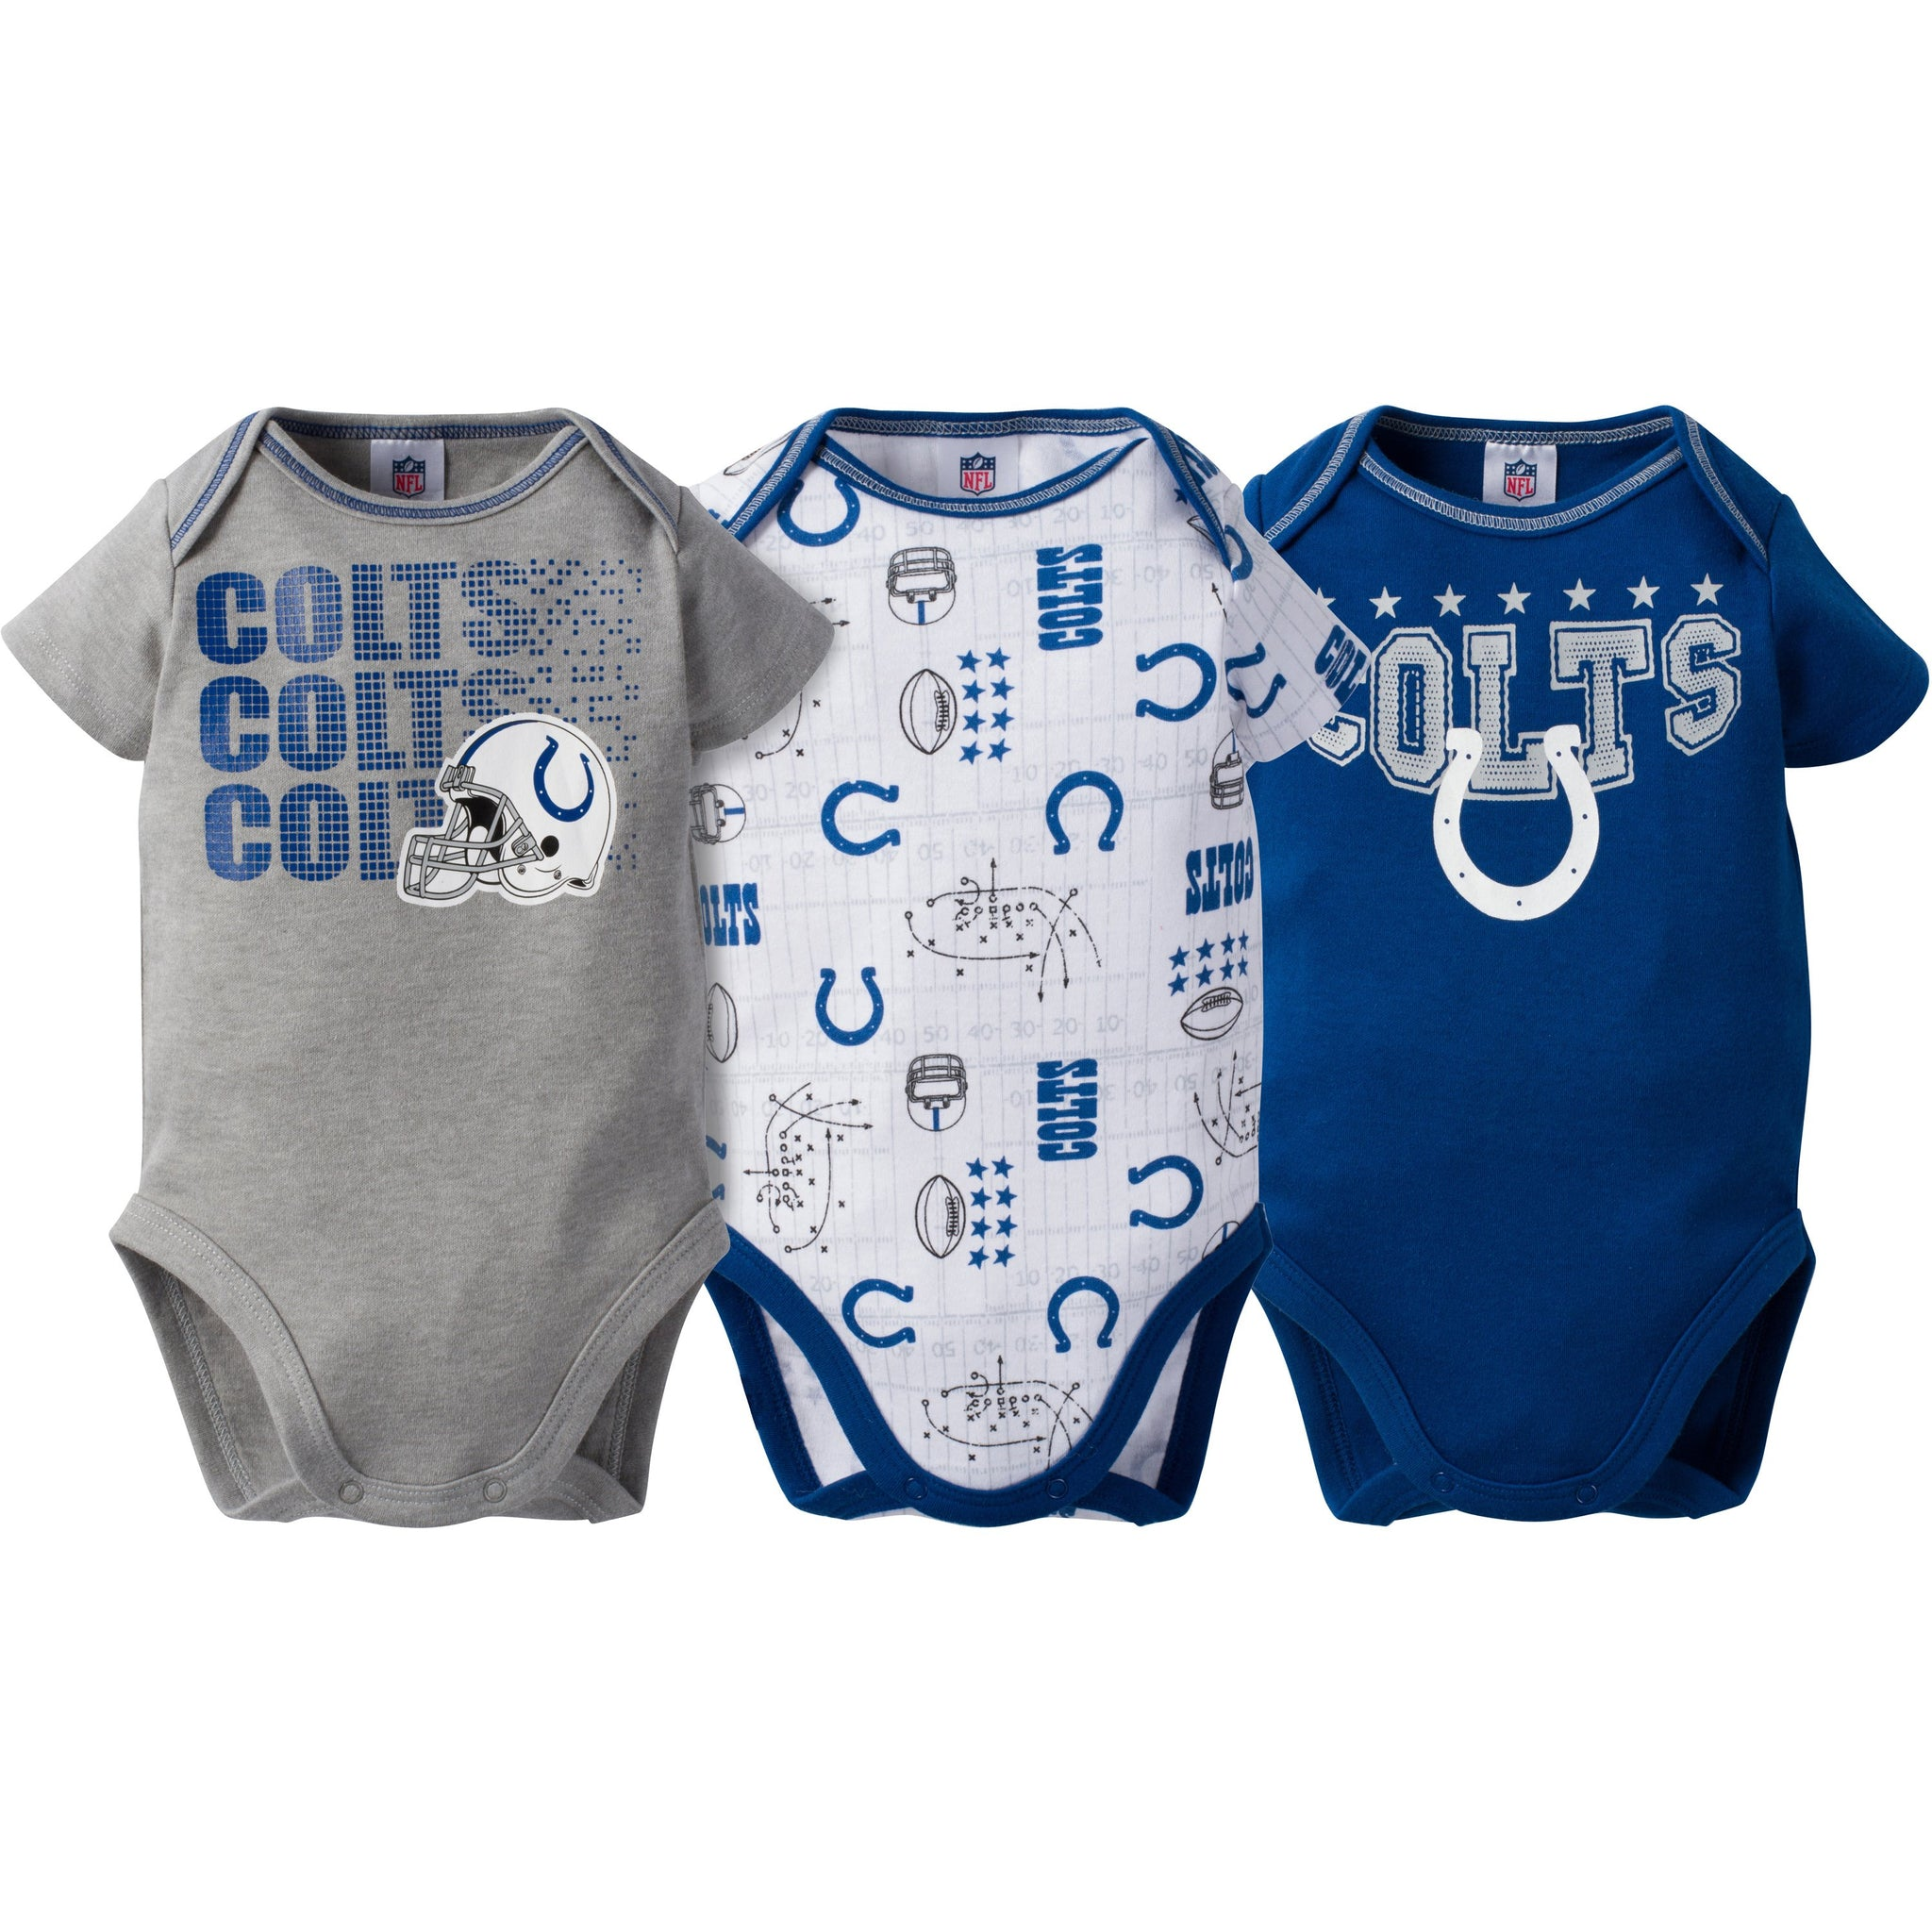 Indianapolis Colts Baby Boy 3-Pack Short Sleeve Bodysuits